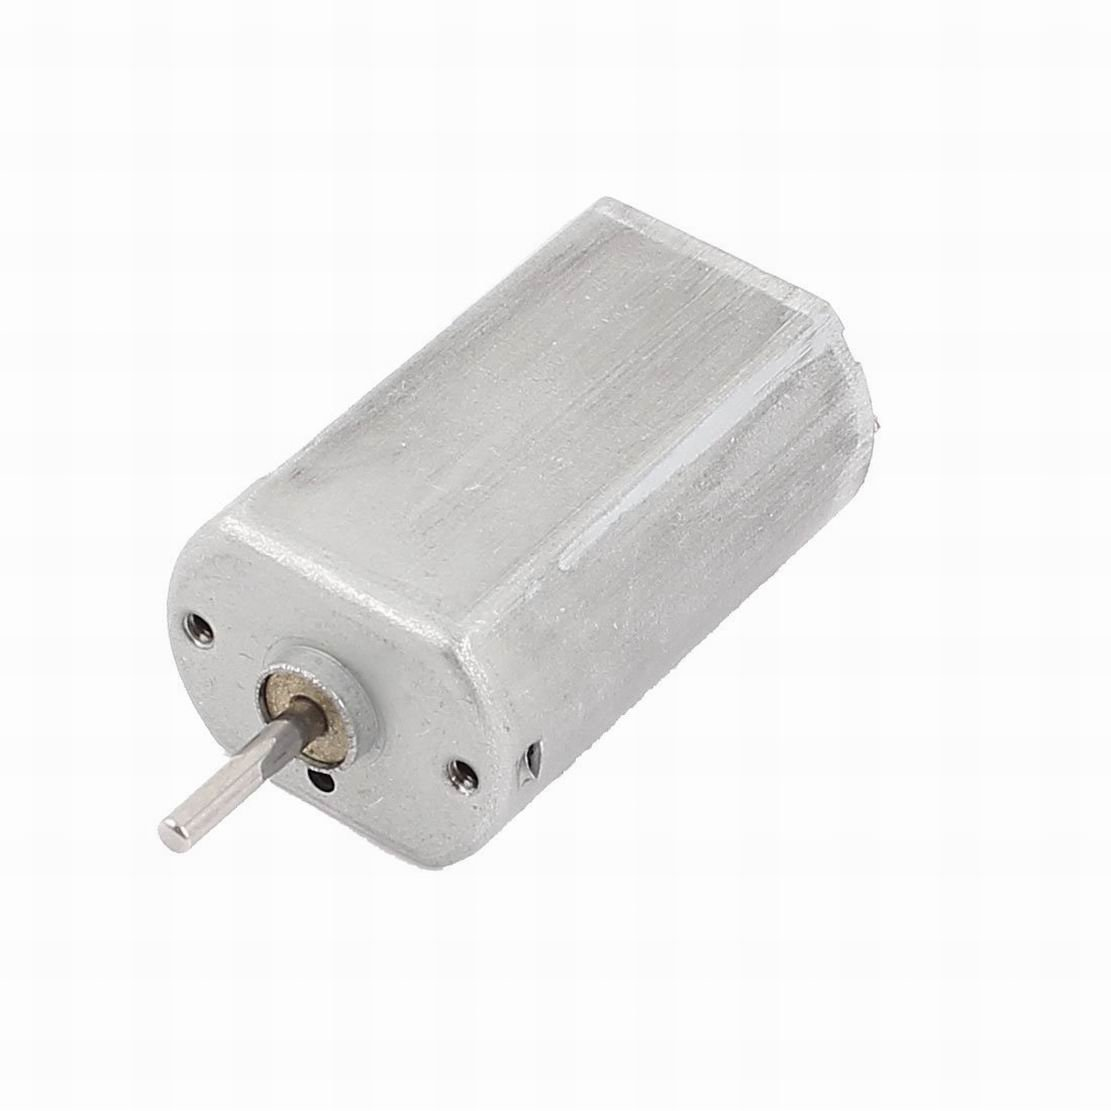 Houseuse Inventory cleanup selling sale Spart Part Popular popular DC 3-9V Mini Electric Motor 48000RPM Magnet